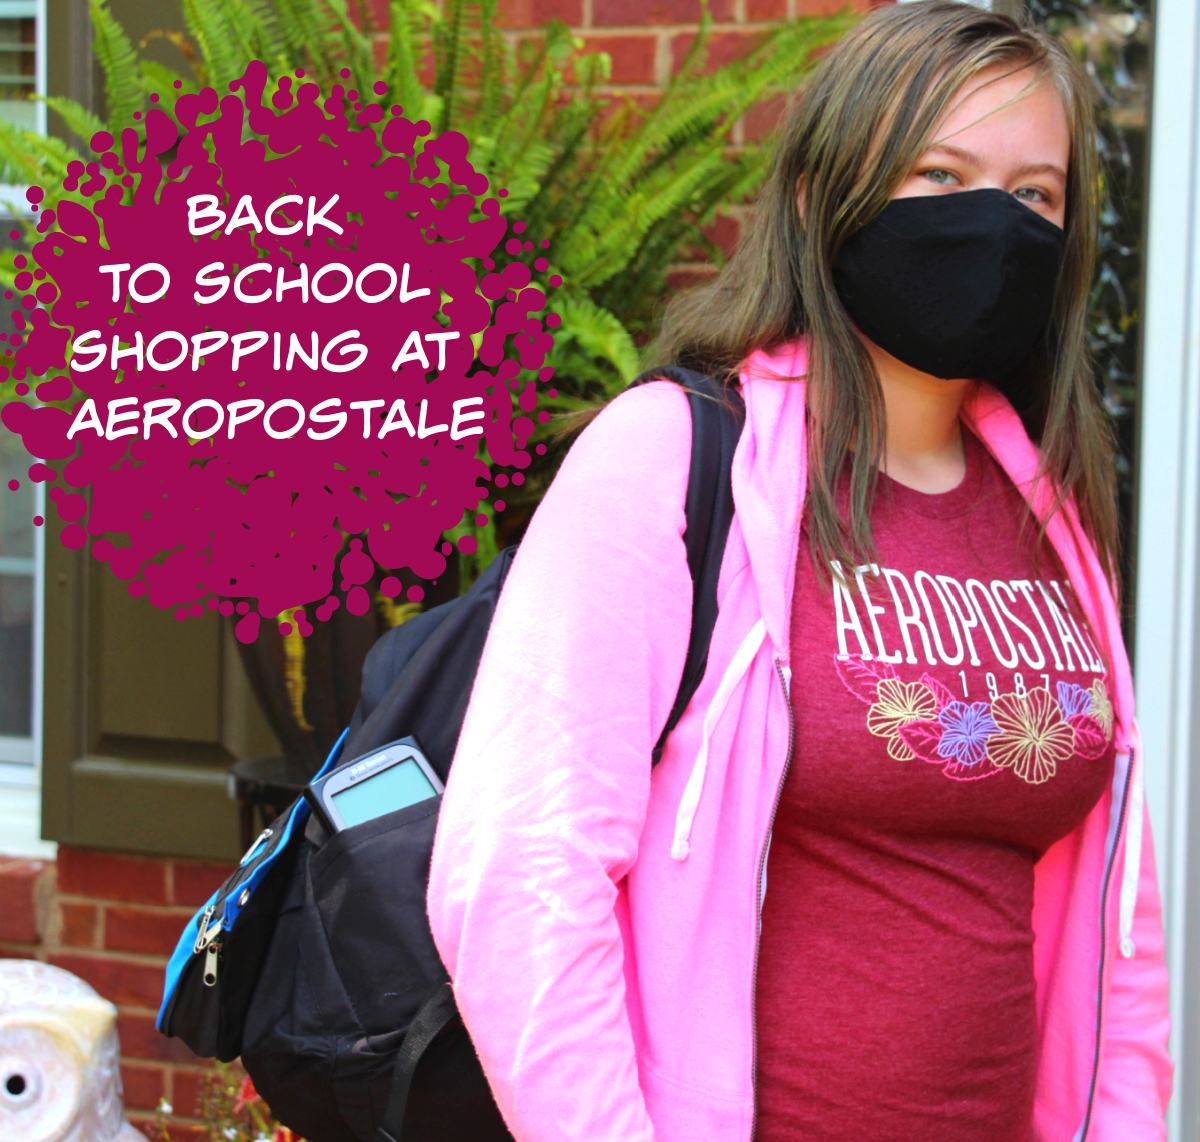 Back To School Shopping at Aeropostale